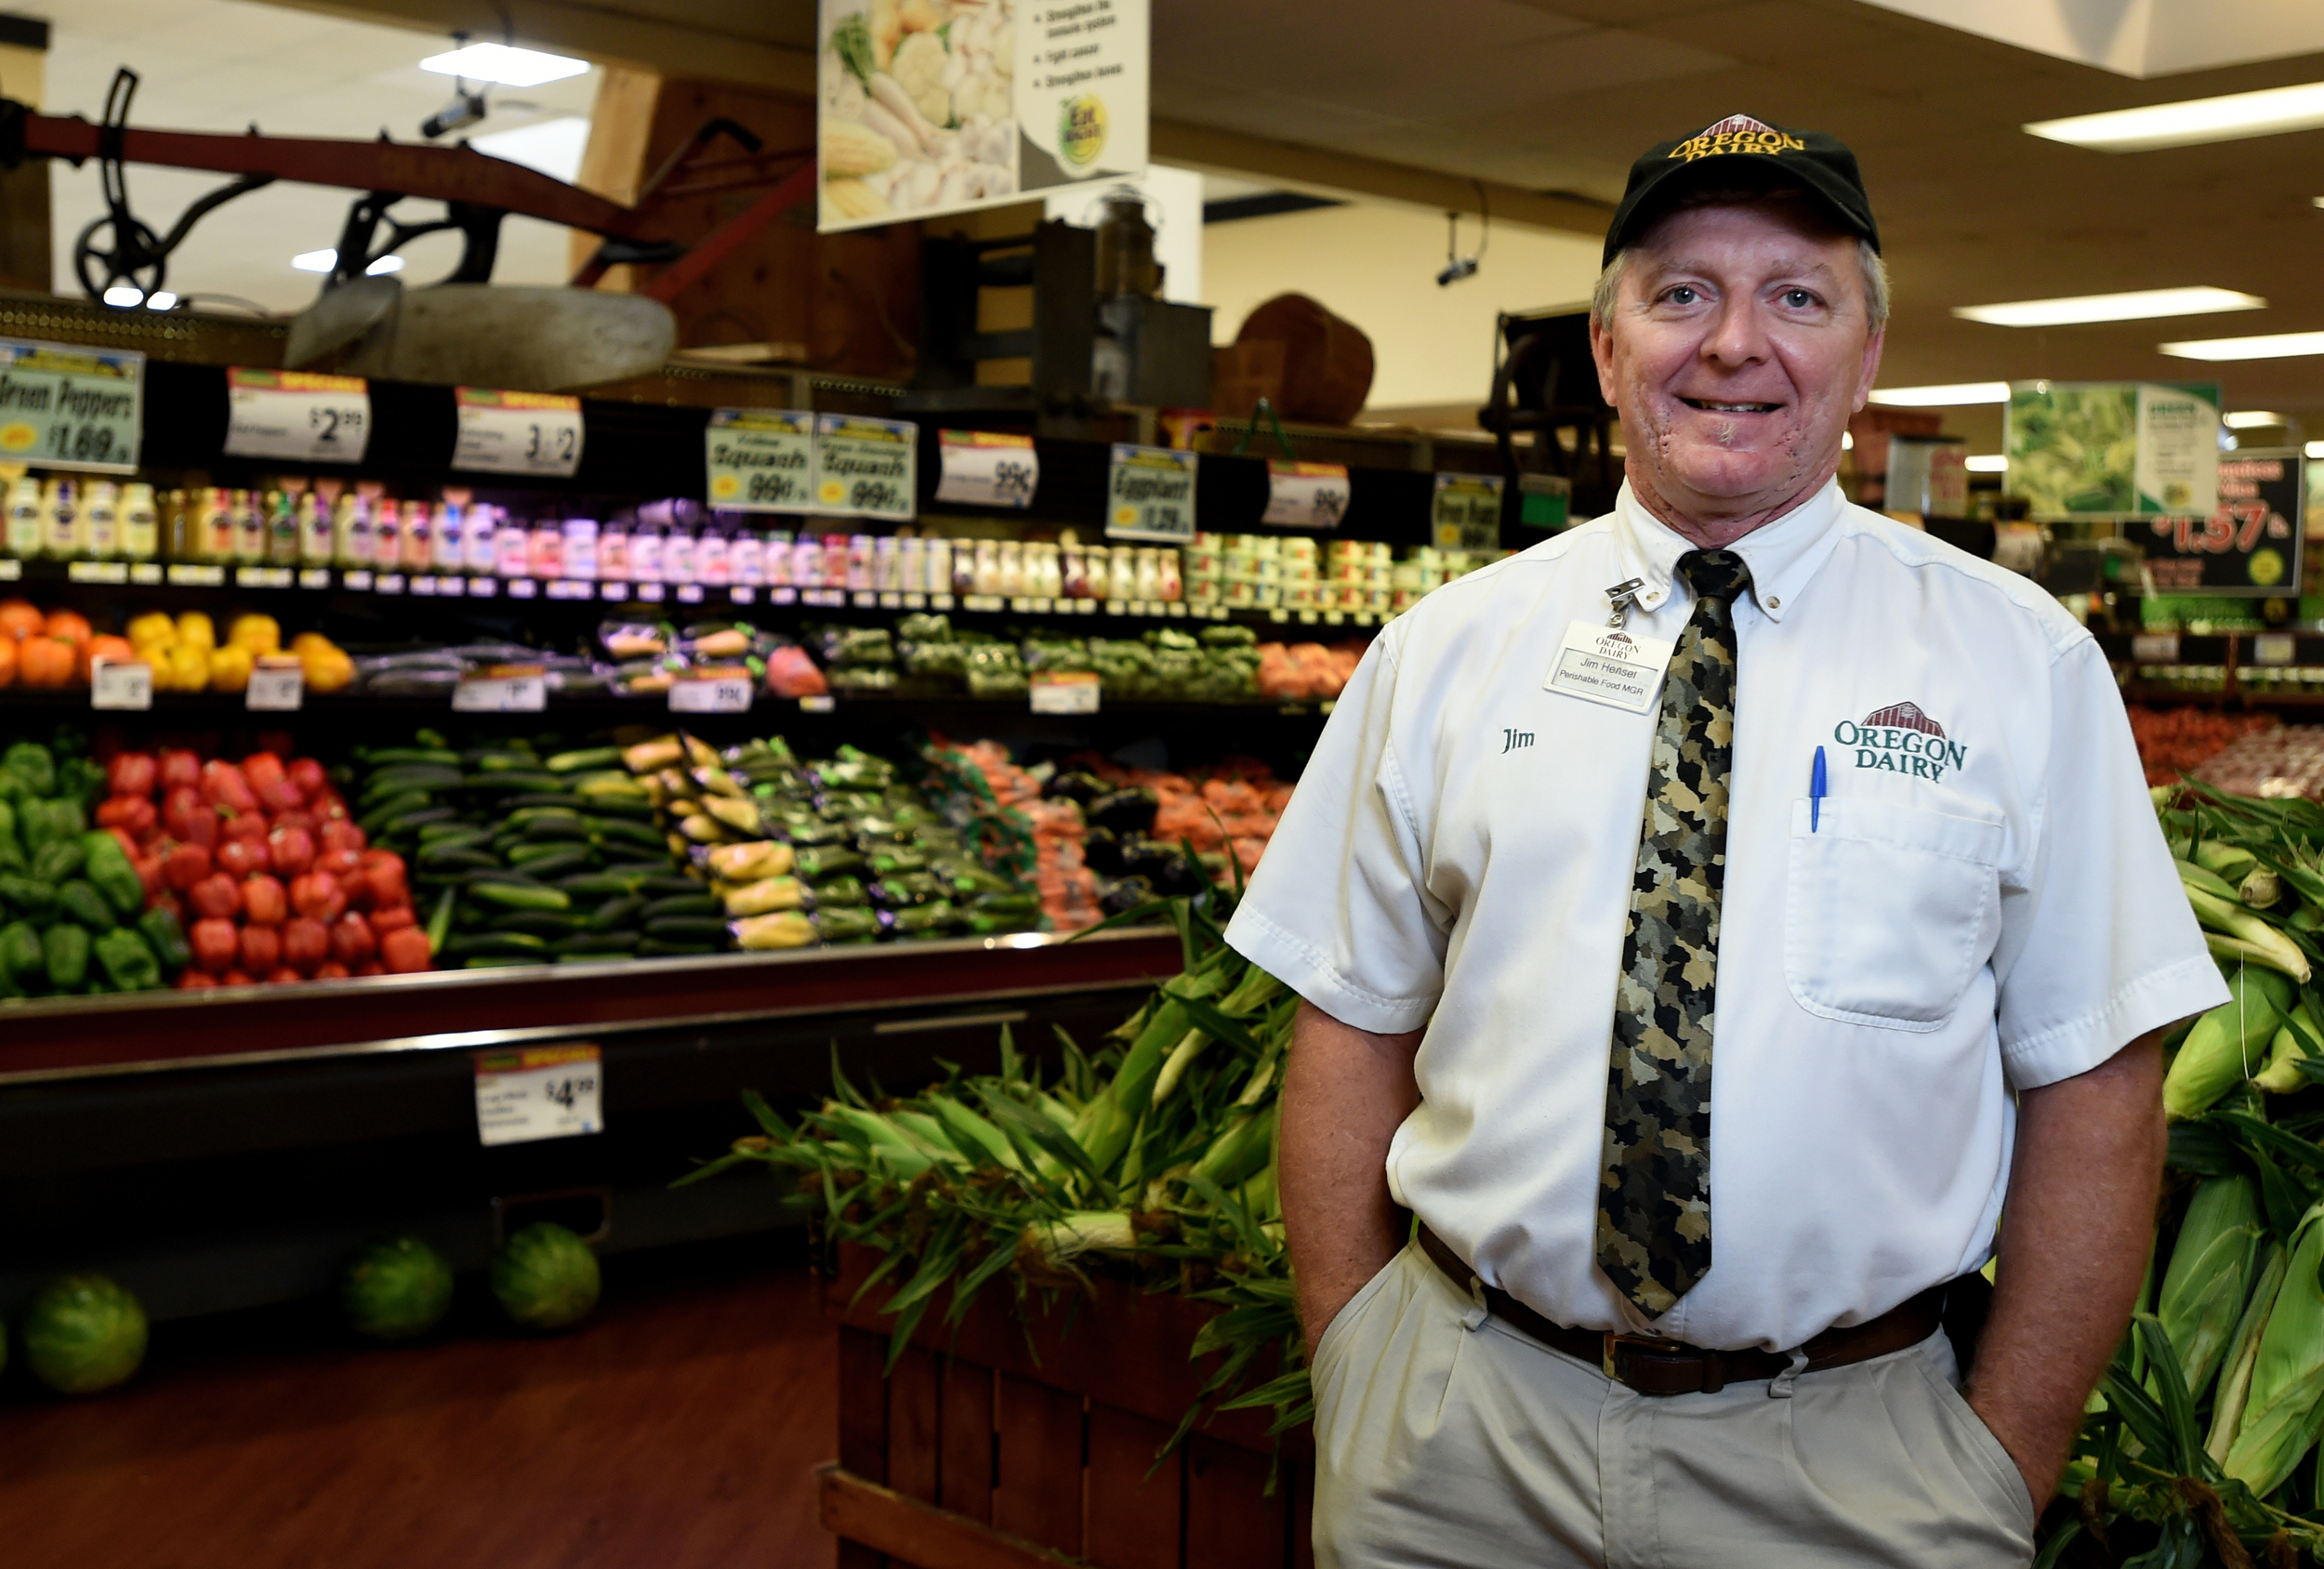 Jim Hensel, Perishable Food Manager at Oregon Dairy in Lititz, PA,poses for a portrait in the dairy's market on July 22, 2016. (Reading Eagle: Sarah Stier)